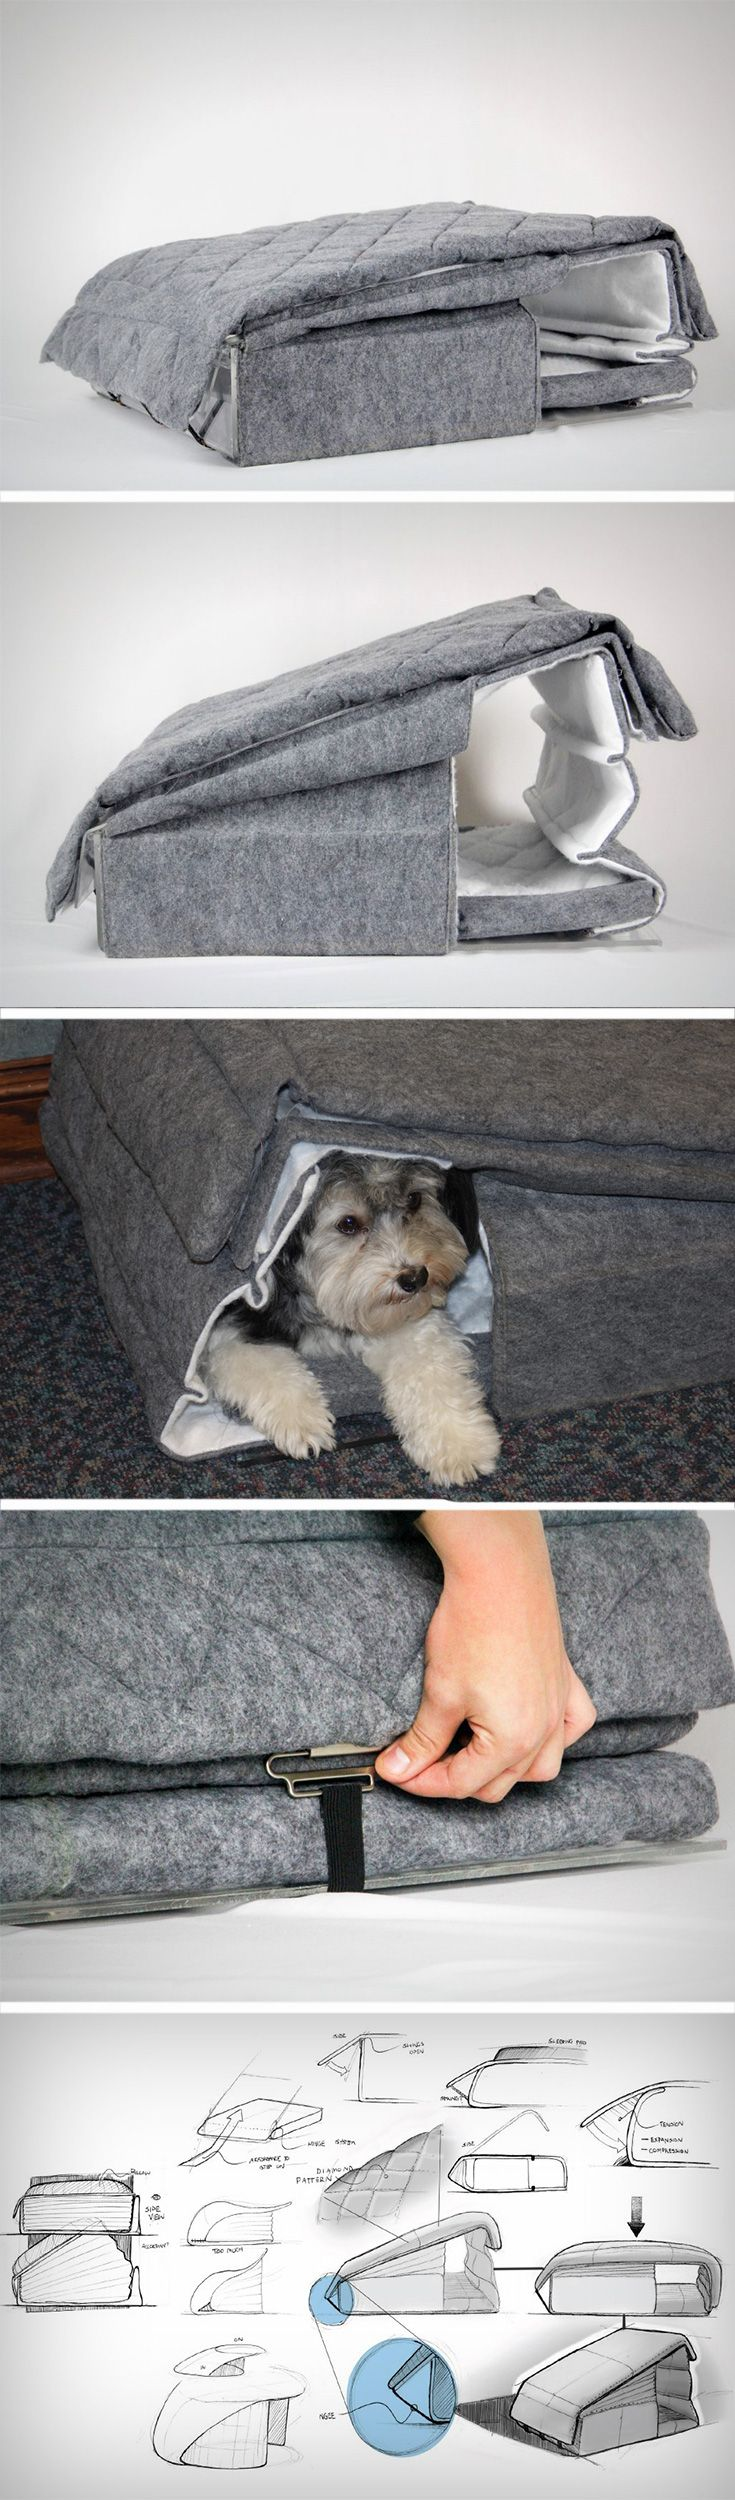 The Furfort is designed for animals, to have their own personal protective space or when folded down it can be used as a bed/mattress.